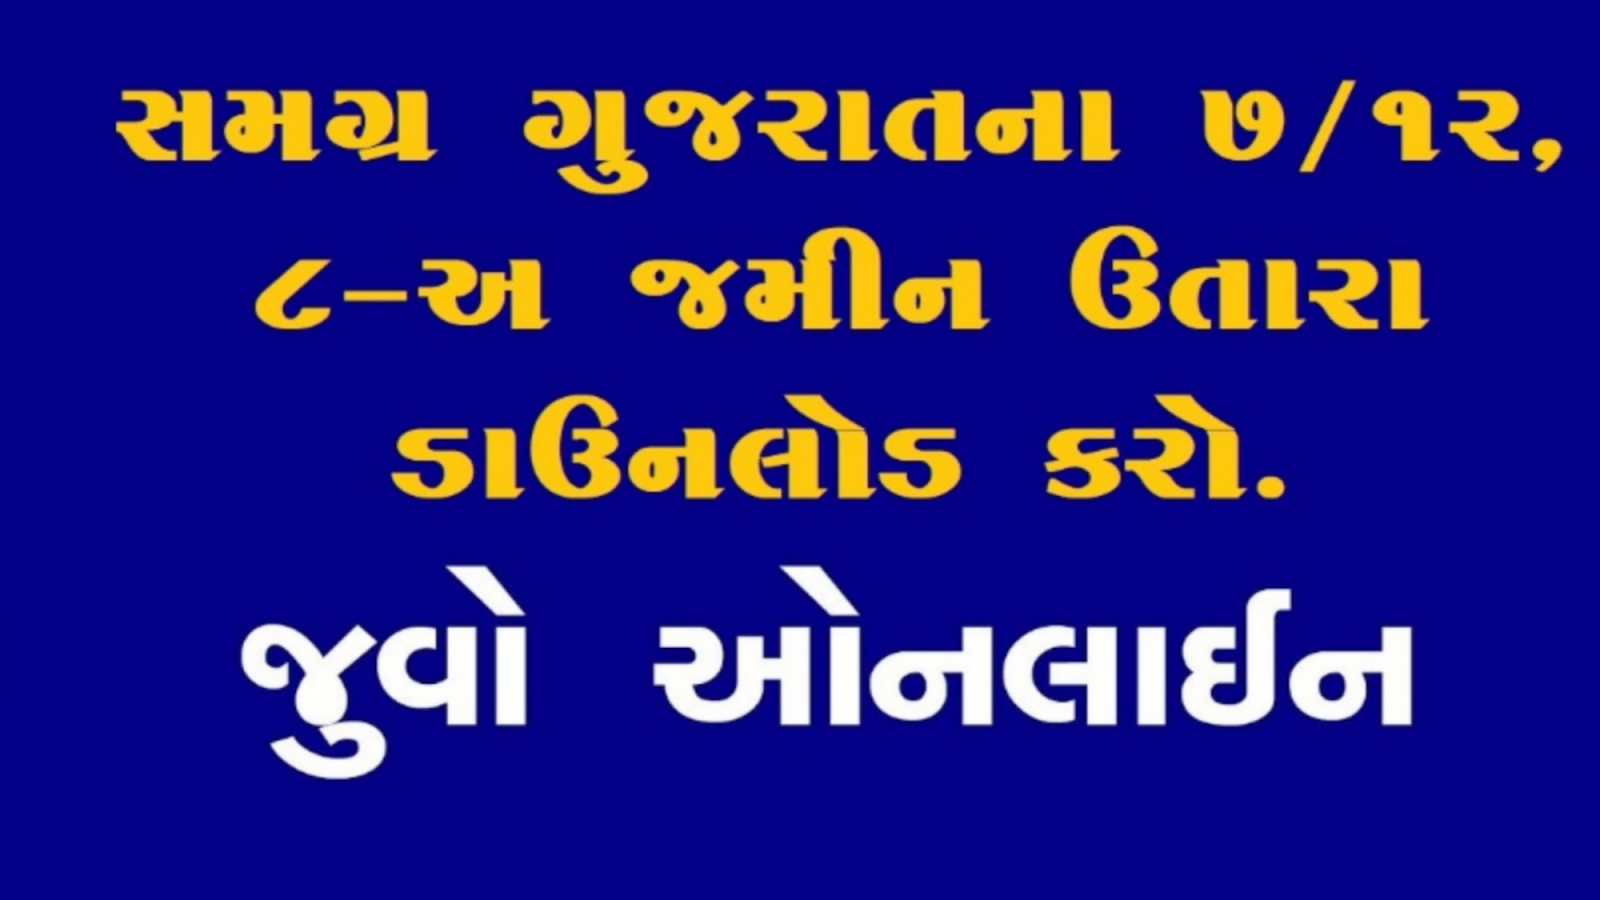 Any ROR Gujarat 7/12